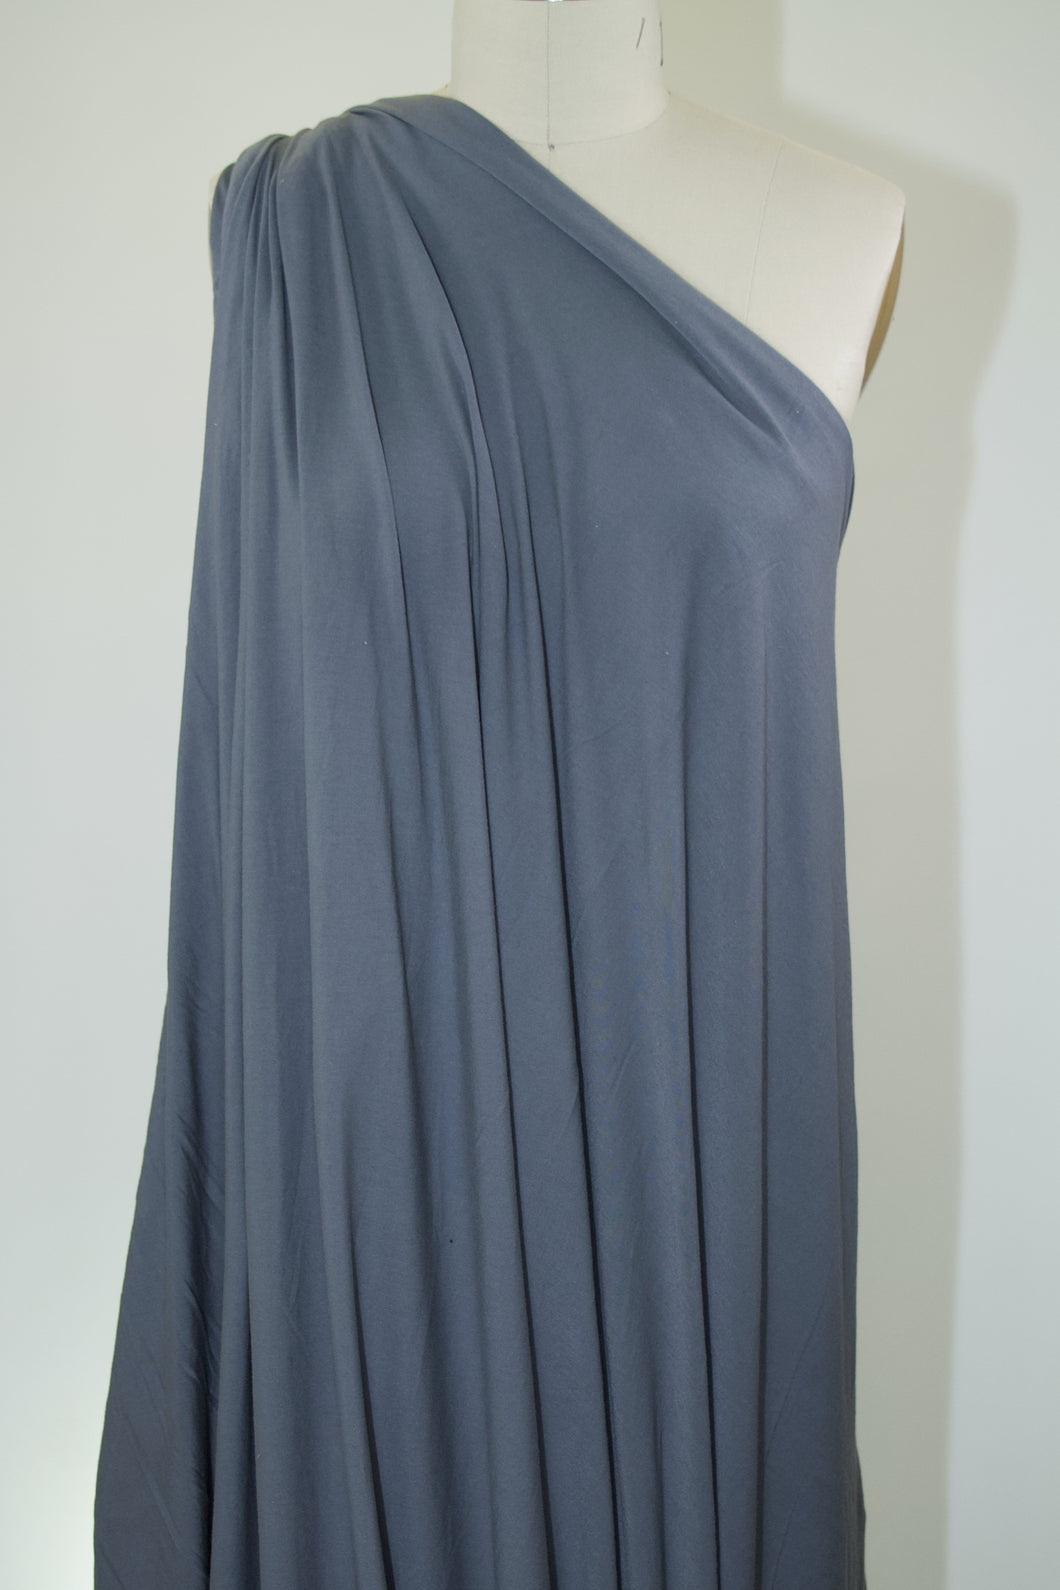 Anne Kle!n Soft Rayon Jersey - Medium Gray